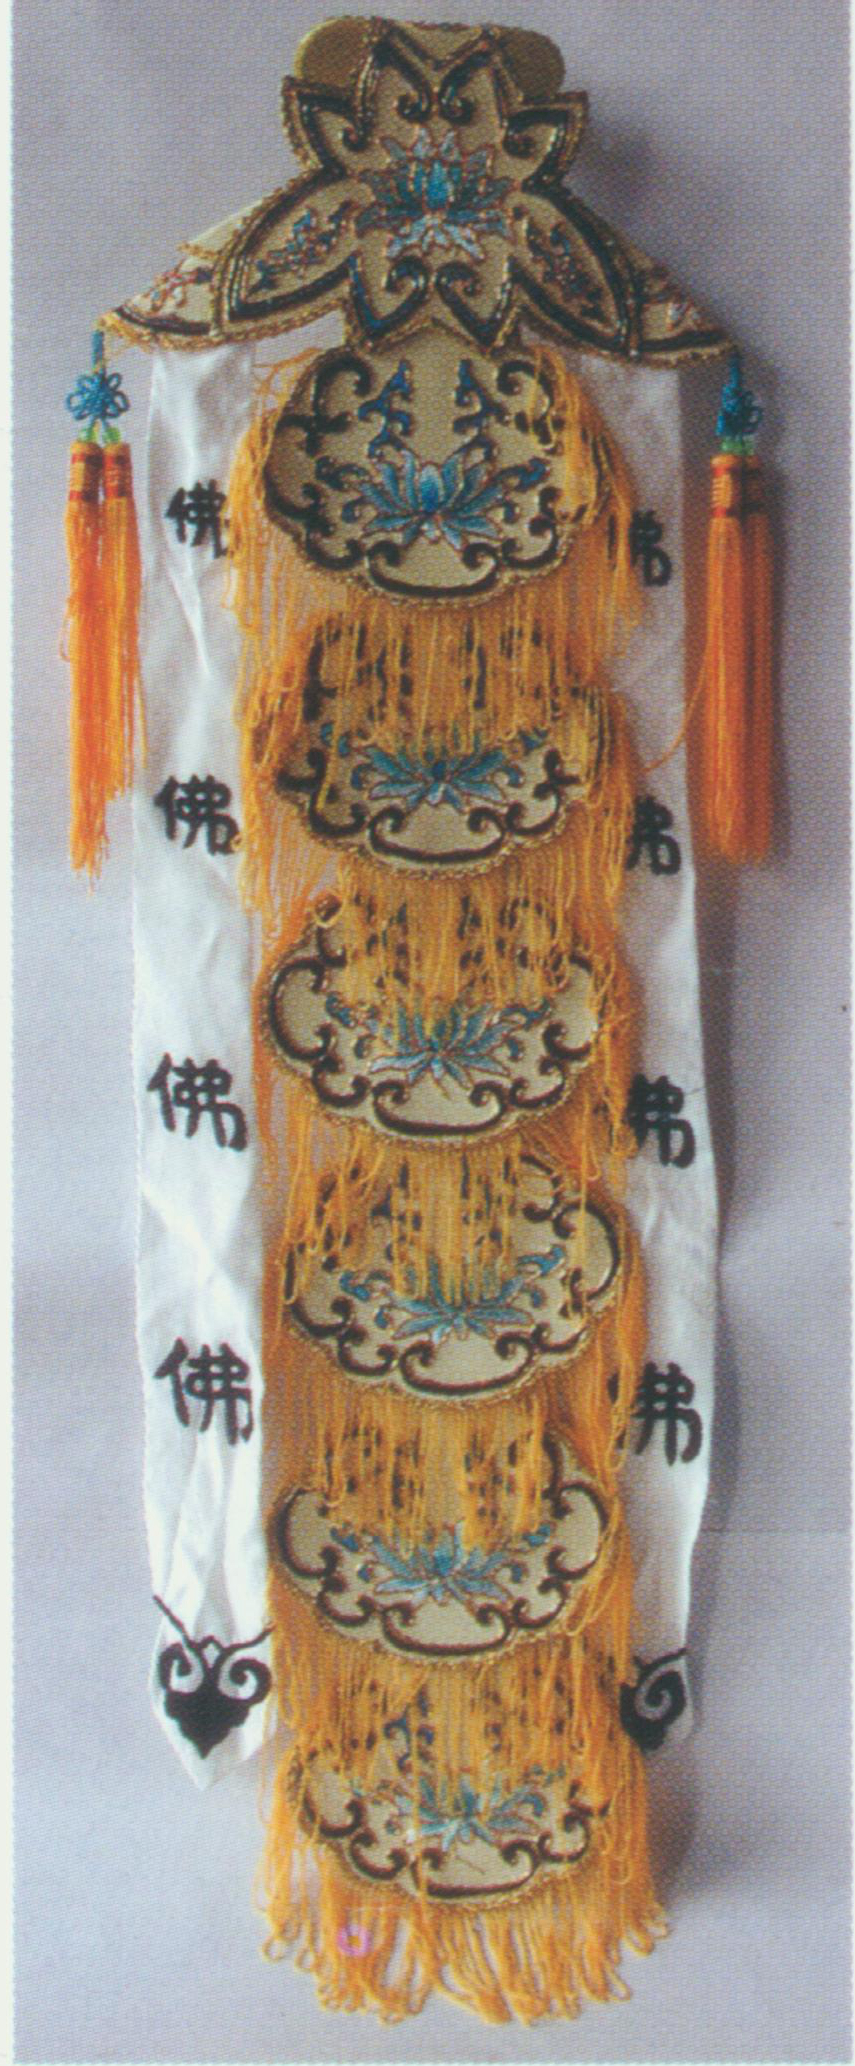 "Taoist Priestess Scarf      A soft hat, also known as ""Miaochang Scarf"" for it is worn by Chen Miaochang, a character in  The Jade Hairpin . The top is made of two ladder-shaped satin cloths. A pair of ribbons embroidered with the word ""Buddhism"" in Chinese is attached to the hat on both sides. The back consists of six light yellow or white oval cloths, with the word ""Buddhism"" in Chinese at the center. The hat is decorated with yellow bullion fringes and two shorter ribbons at bottom. It is worn by Taoist priestess, hence the name."